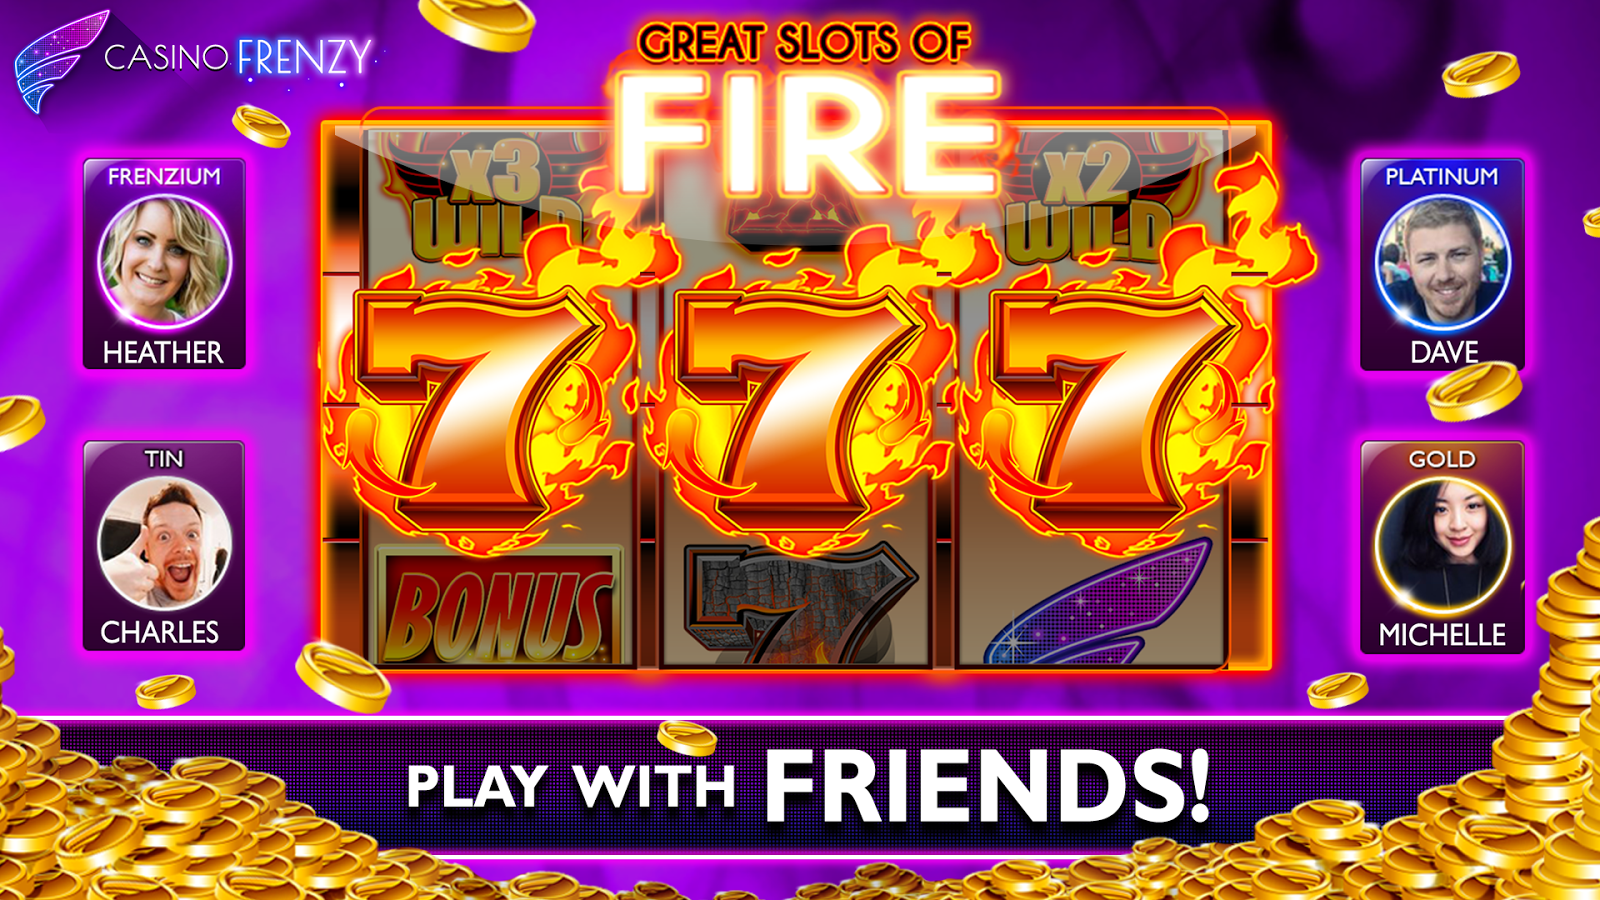 Casino Frenzy games for iPhone 2018